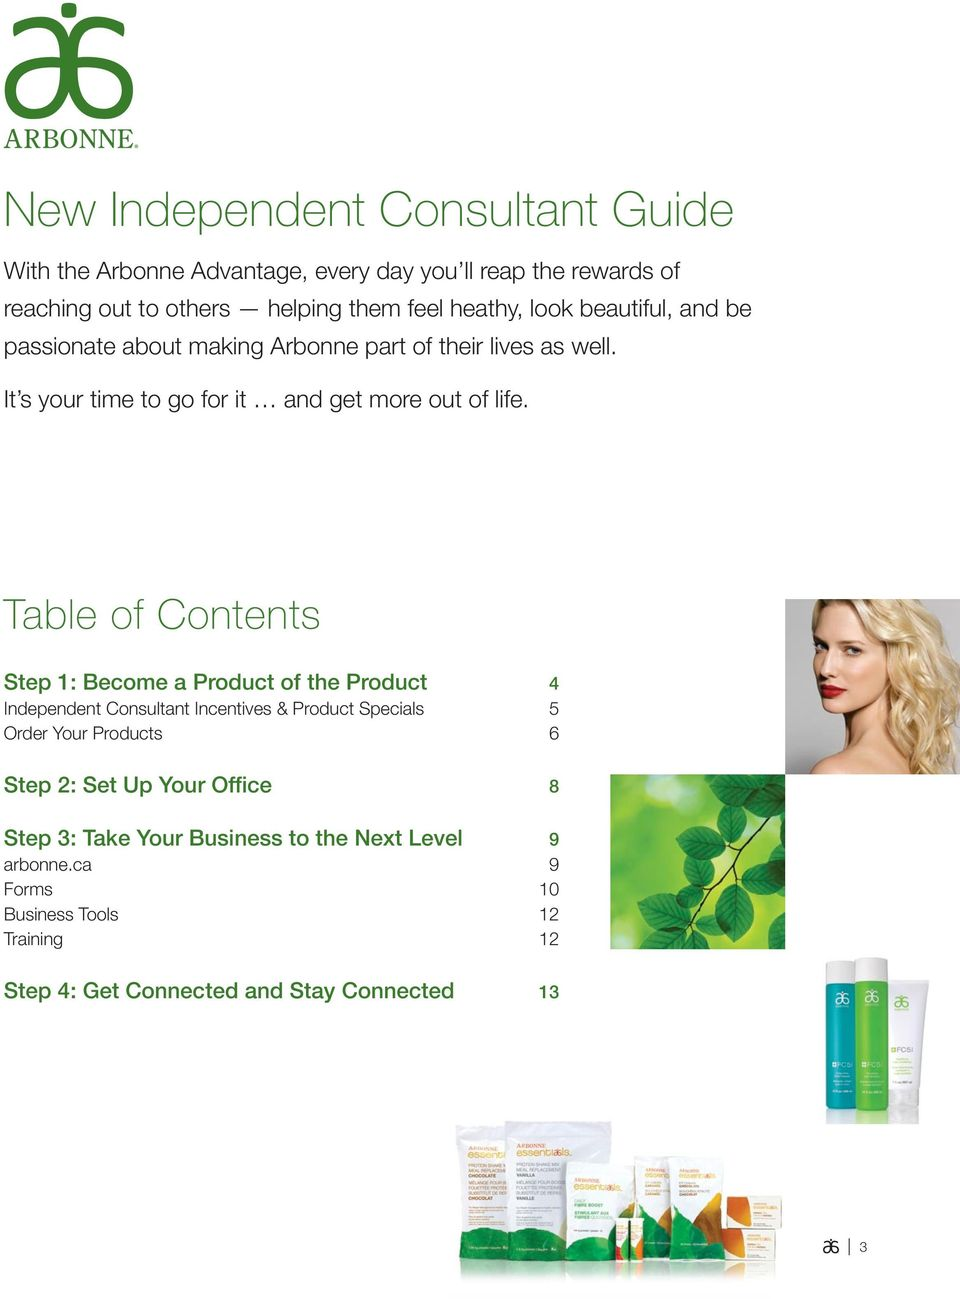 New Independent Consultant Guide CANADA - PDF